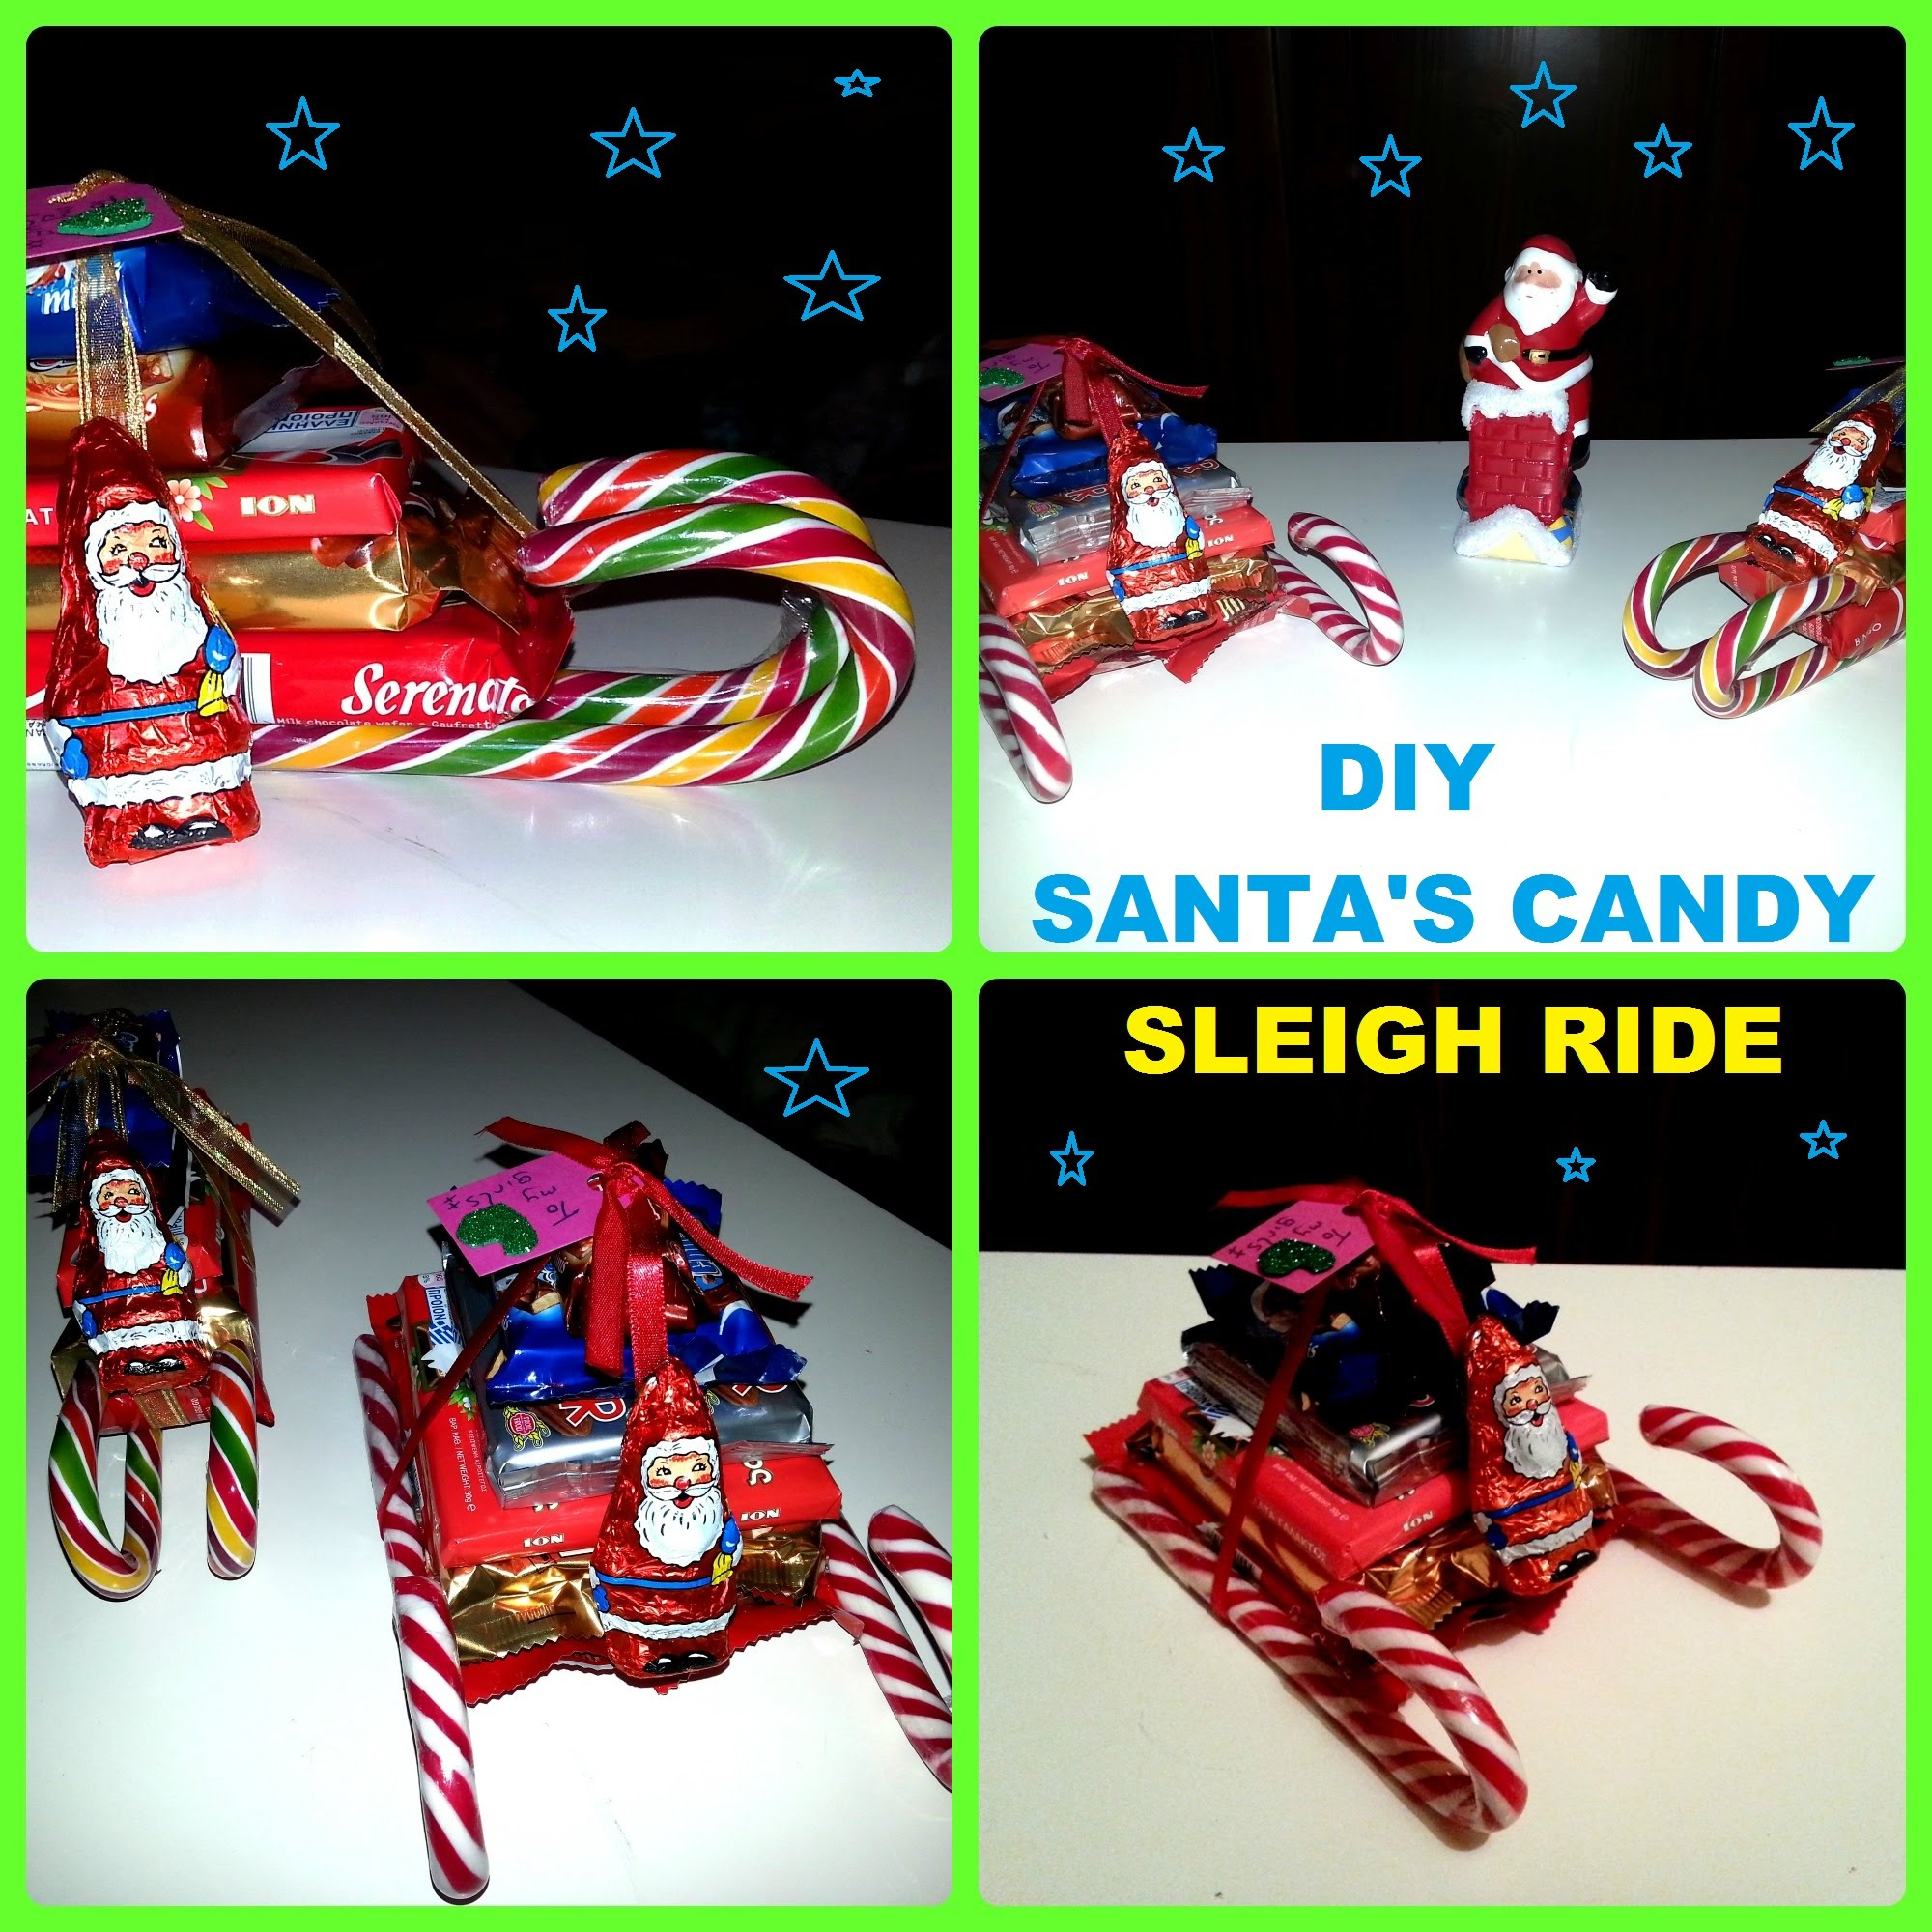 DIY: HOW TO MAKE SANTA'S CANDY SLEIGH RIDE - YouTube